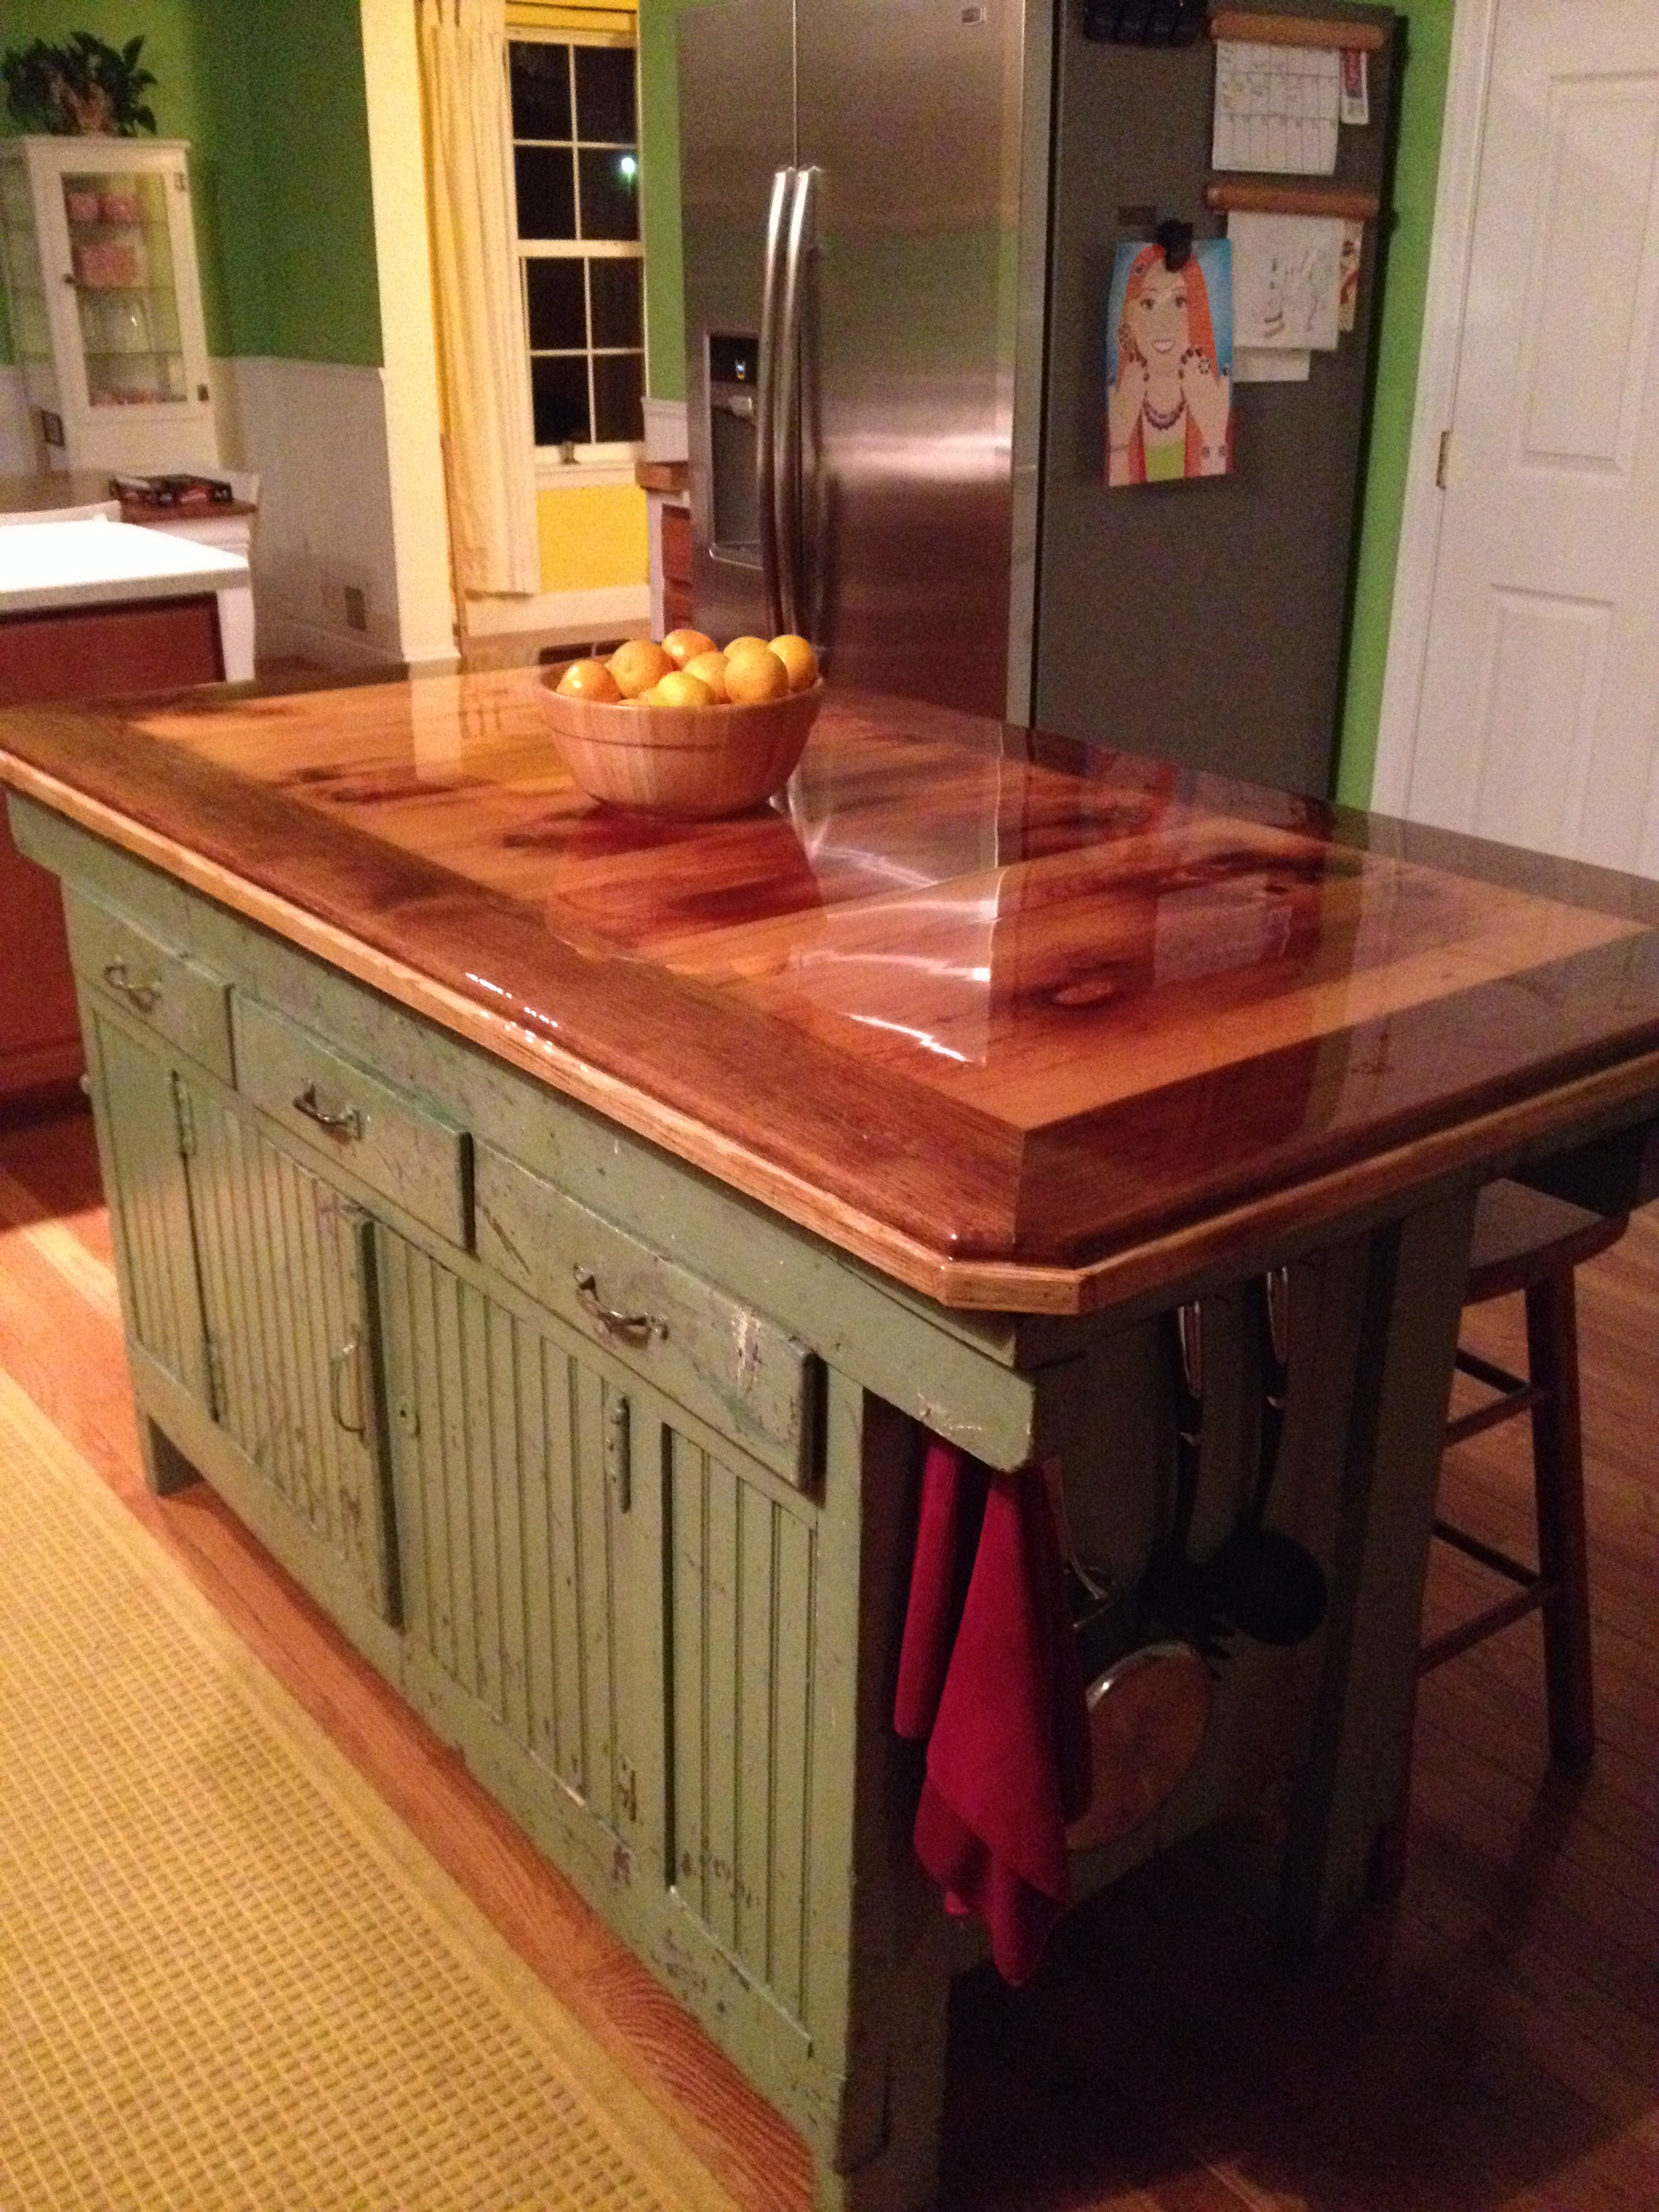 Go To The Furniture Rehab Page And Check Out My Kitchen Island Project! It  Was Almost 150 Years In The Making!